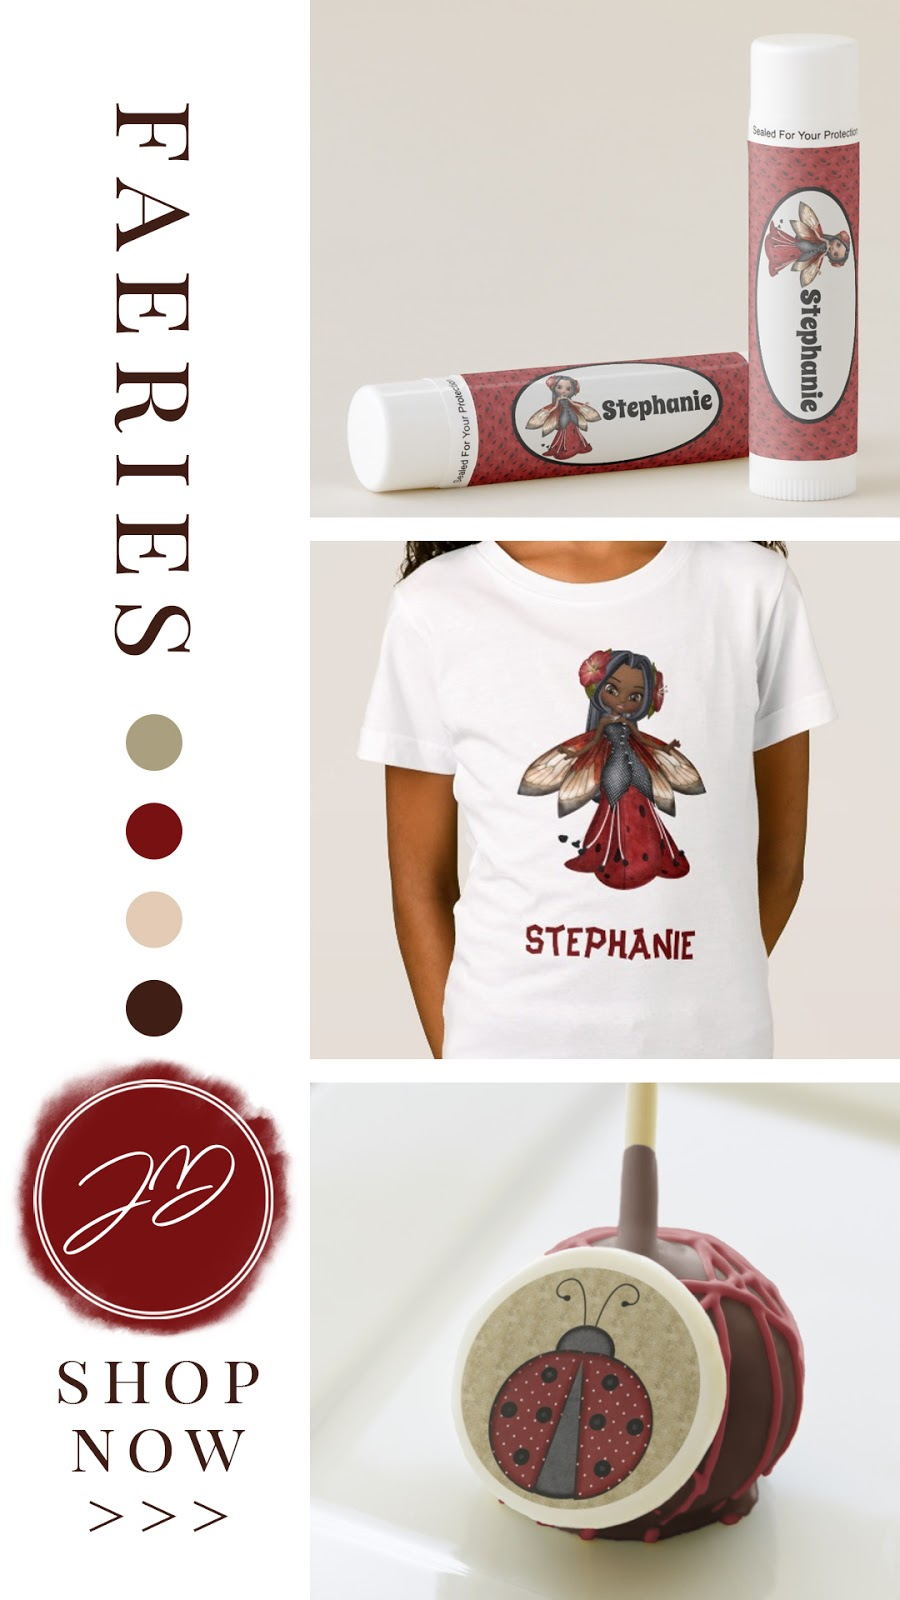 African American ladybug fairy girl's birthday party suite. Personalized apparel, invites, treats and party favors. In a red black and tan color palette.